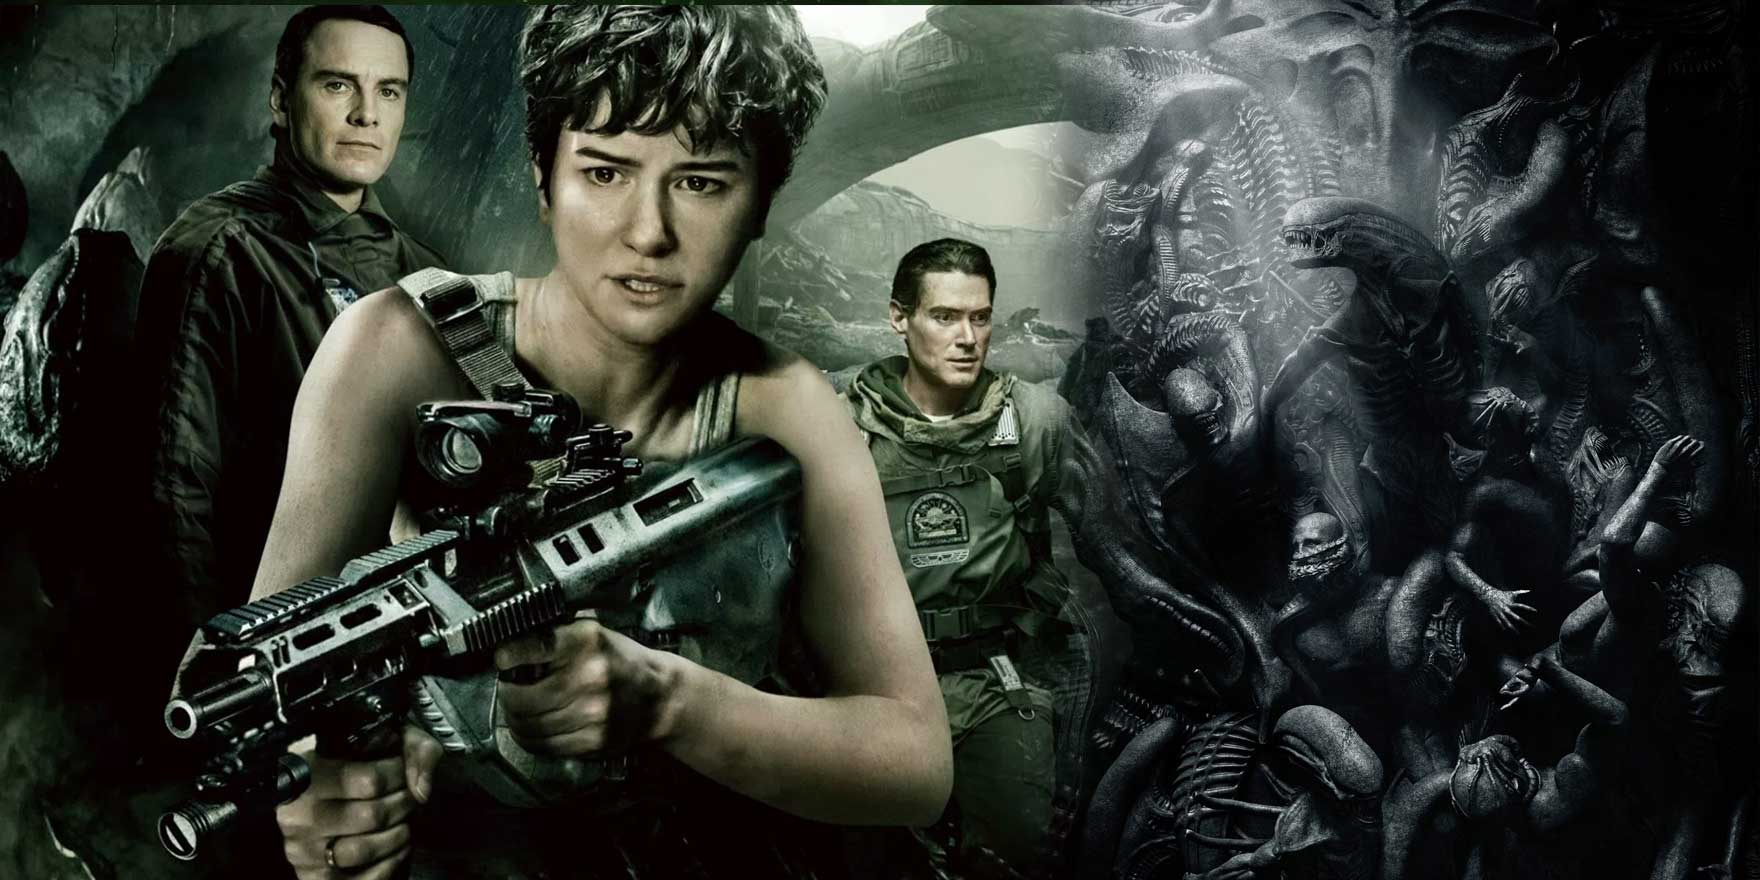 Alien: Covenant - Header Image